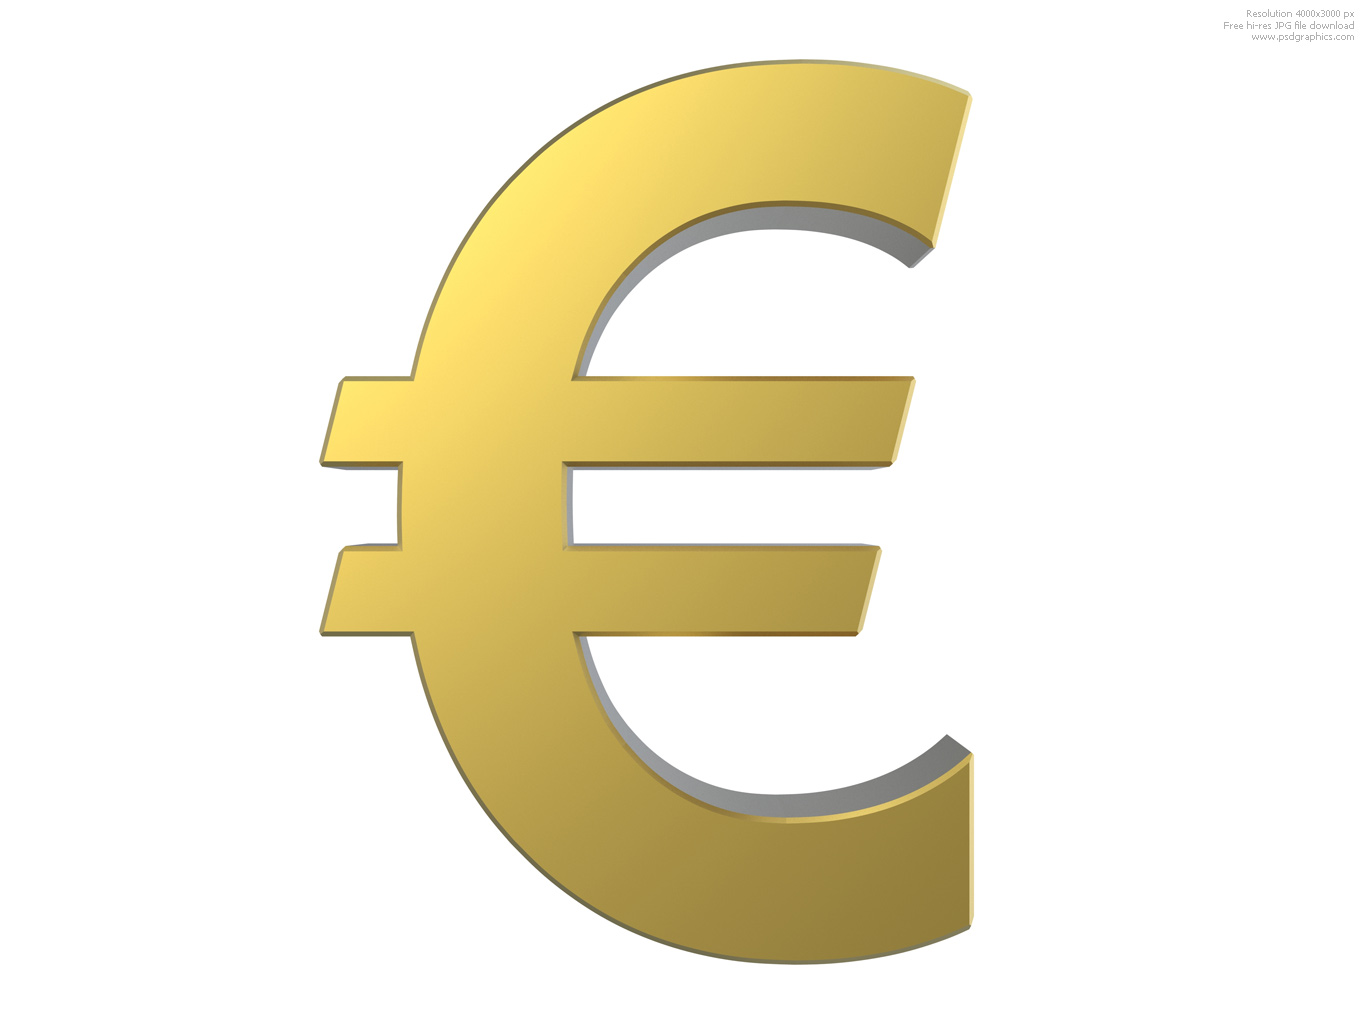 File:Euro sign.svg - Wikimedia Commons